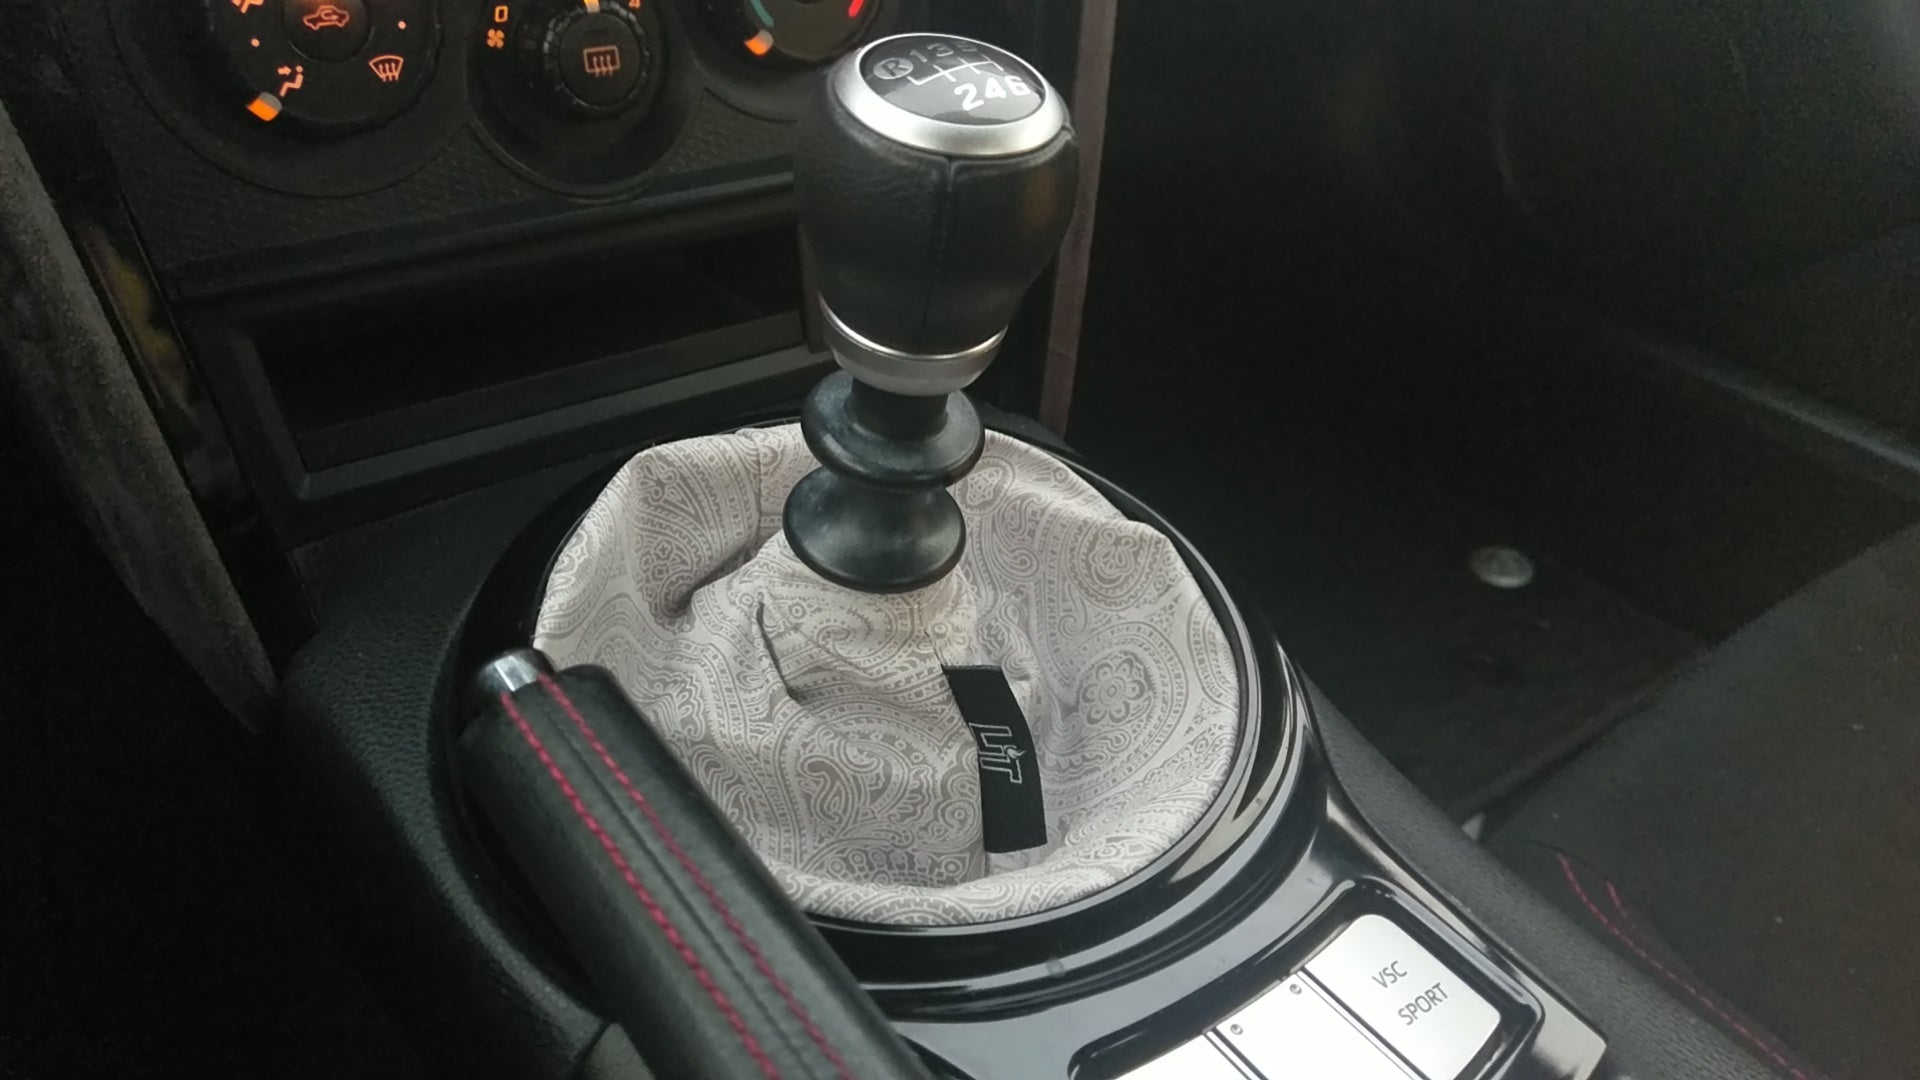 The Gray Art shift boot